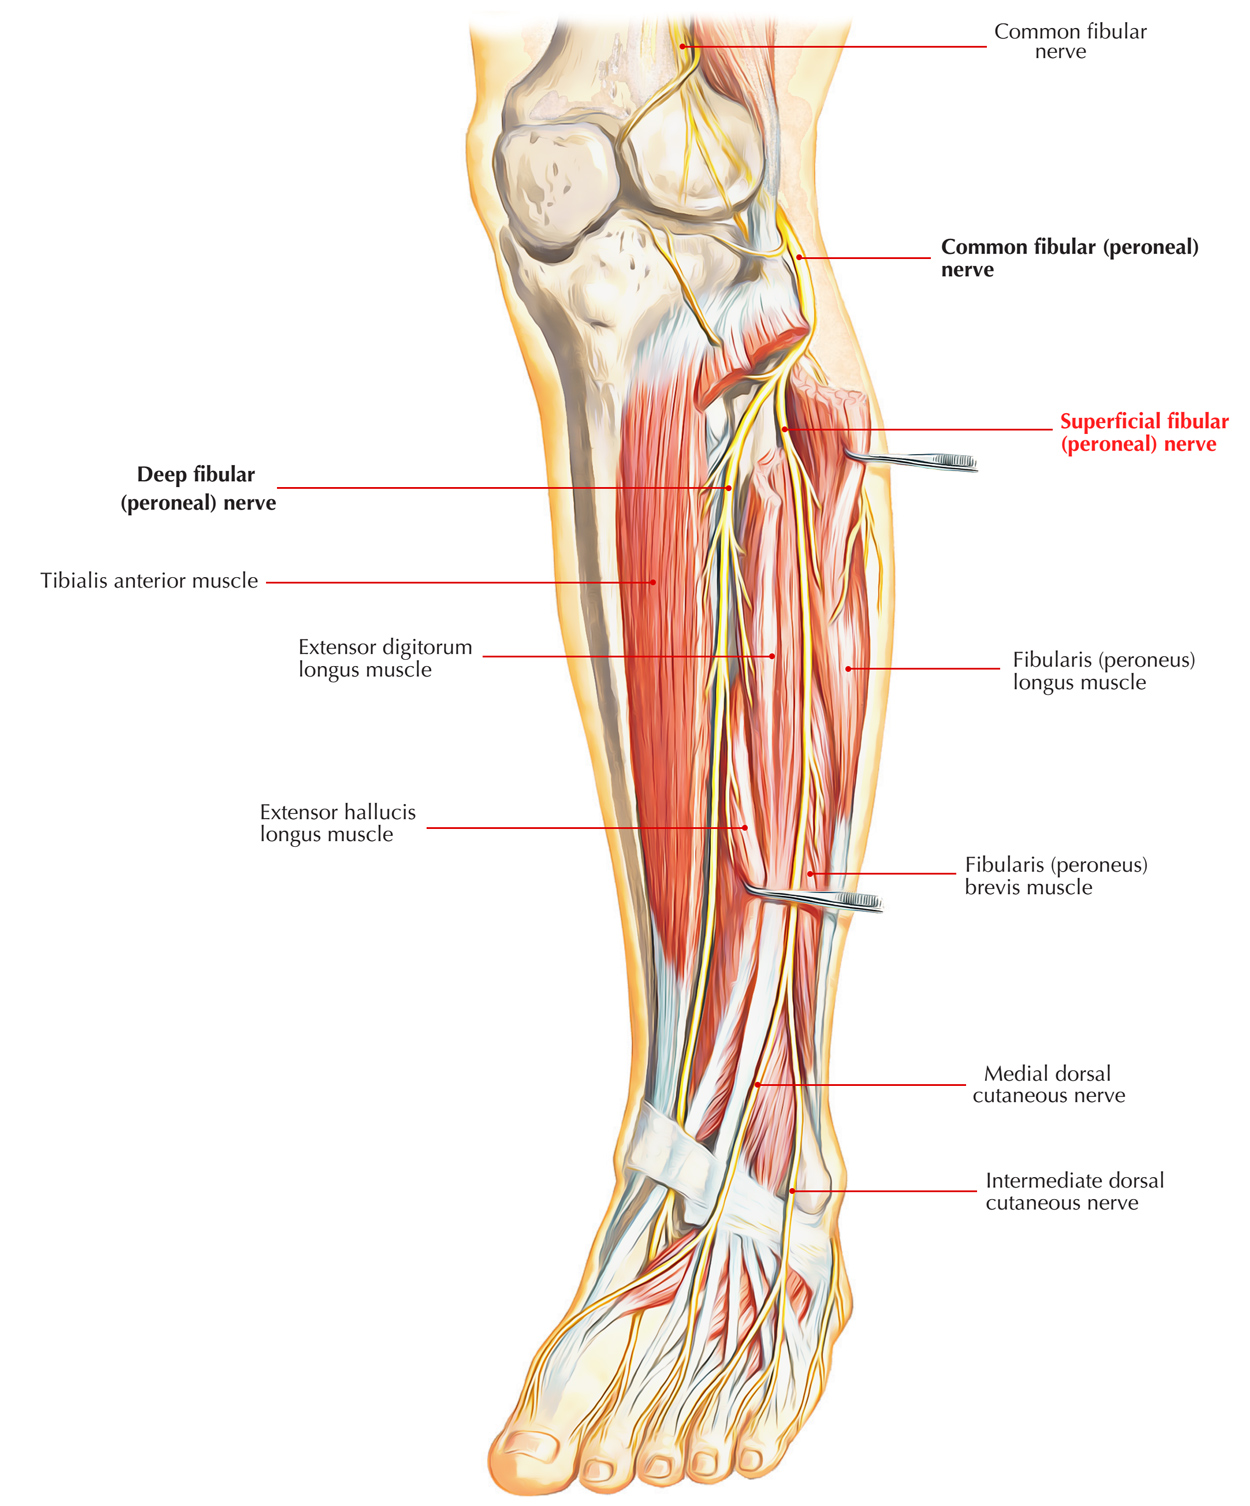 hight resolution of nerves of foot superficial fibular nerve